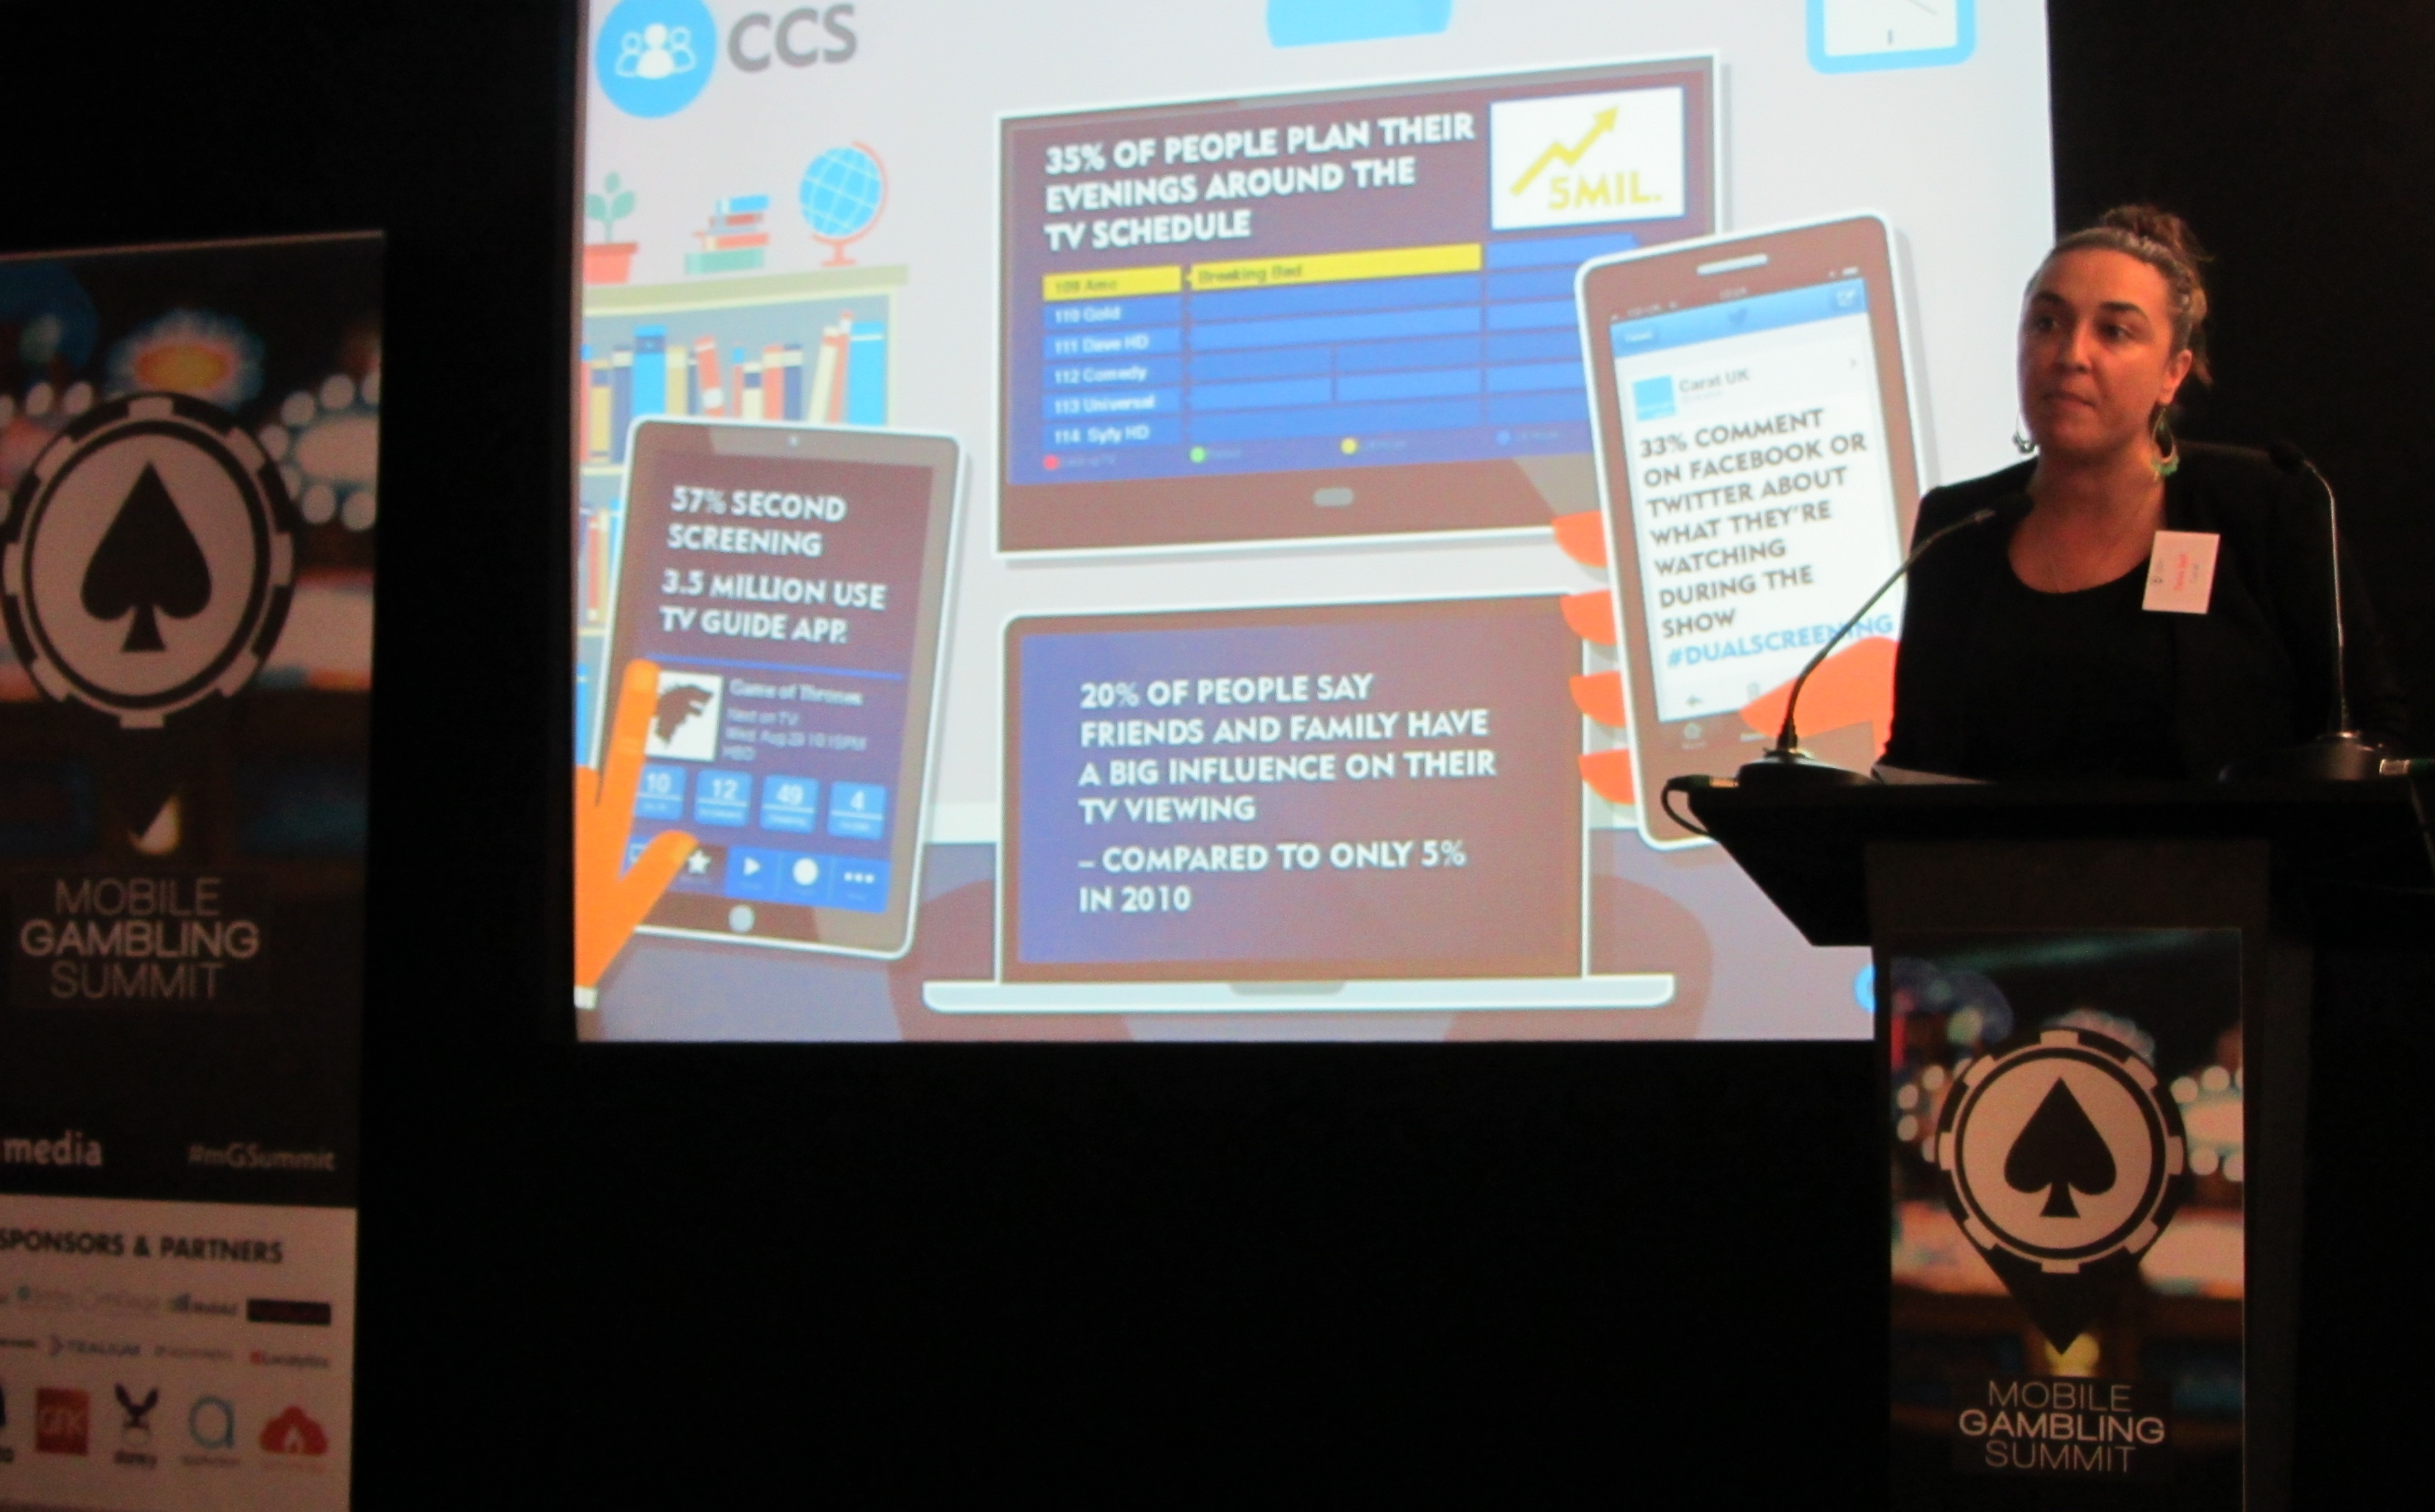 #MGSummit: Coral on Why Twitter Beats Facebook for Gambling Brands